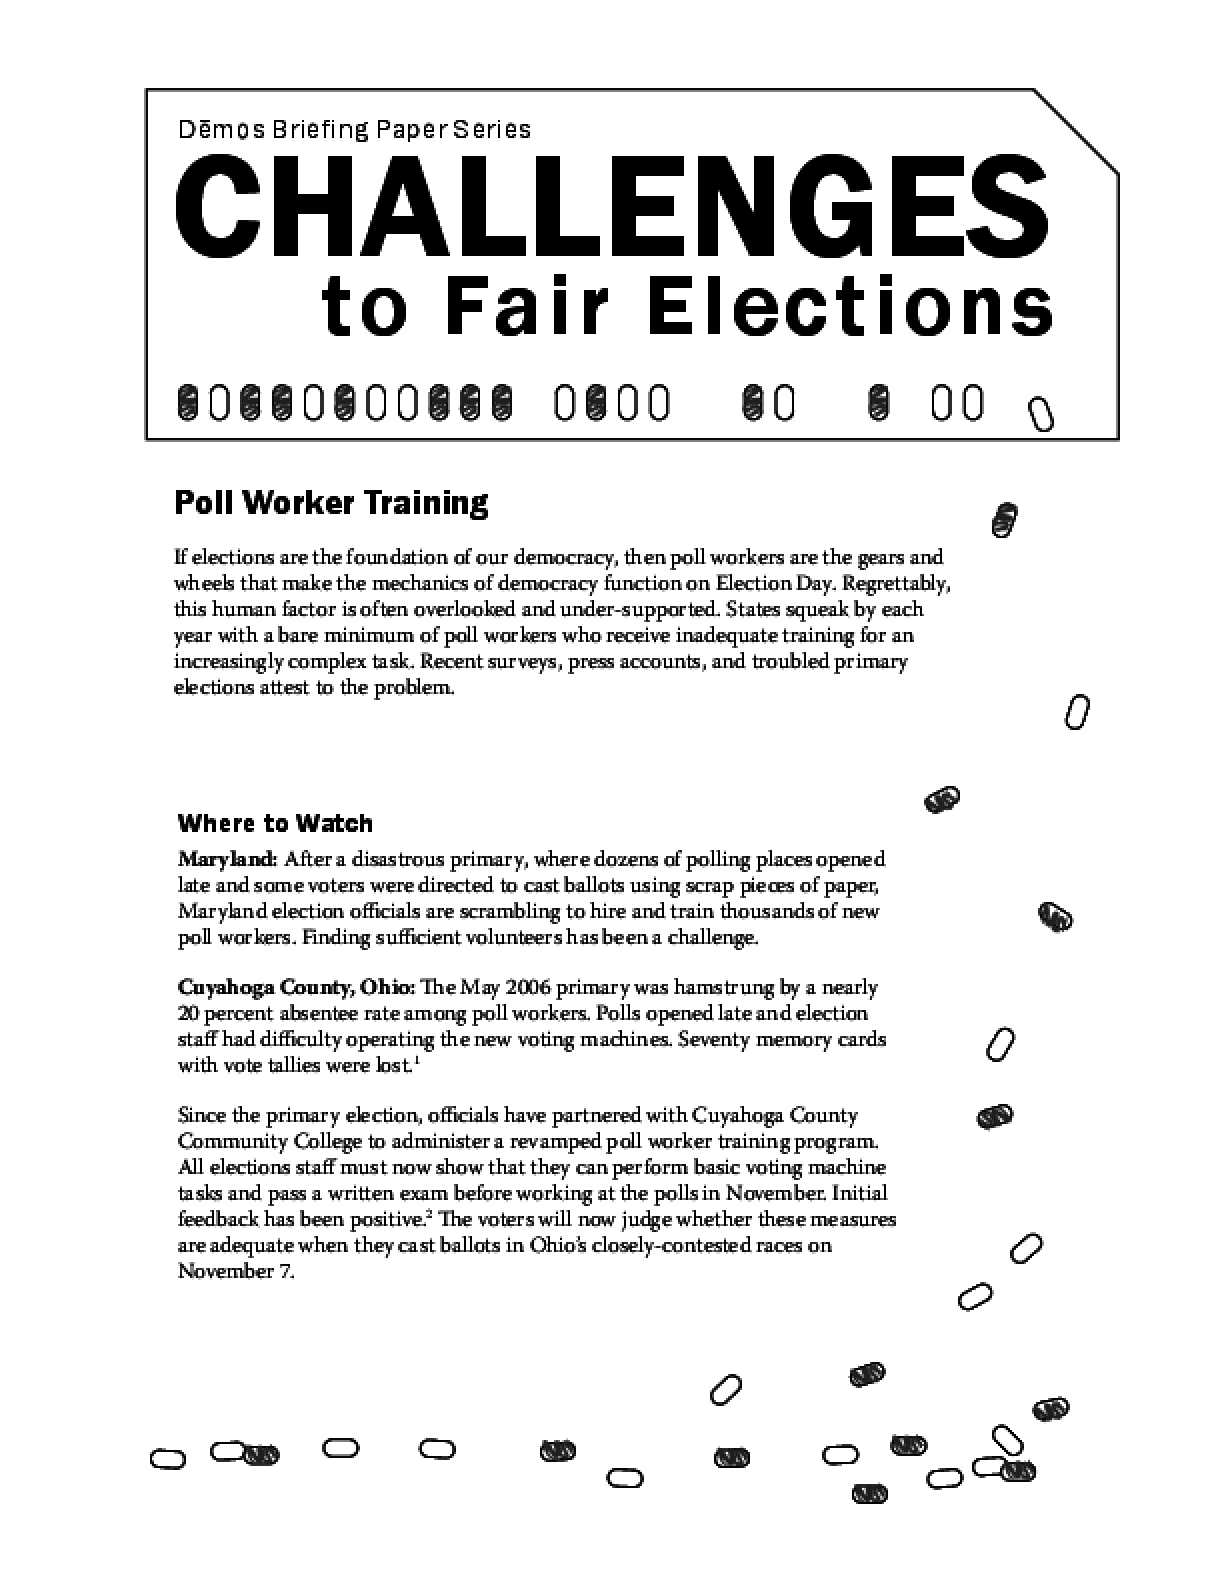 Challenges to Fair Elections 5: Poll Worker Training